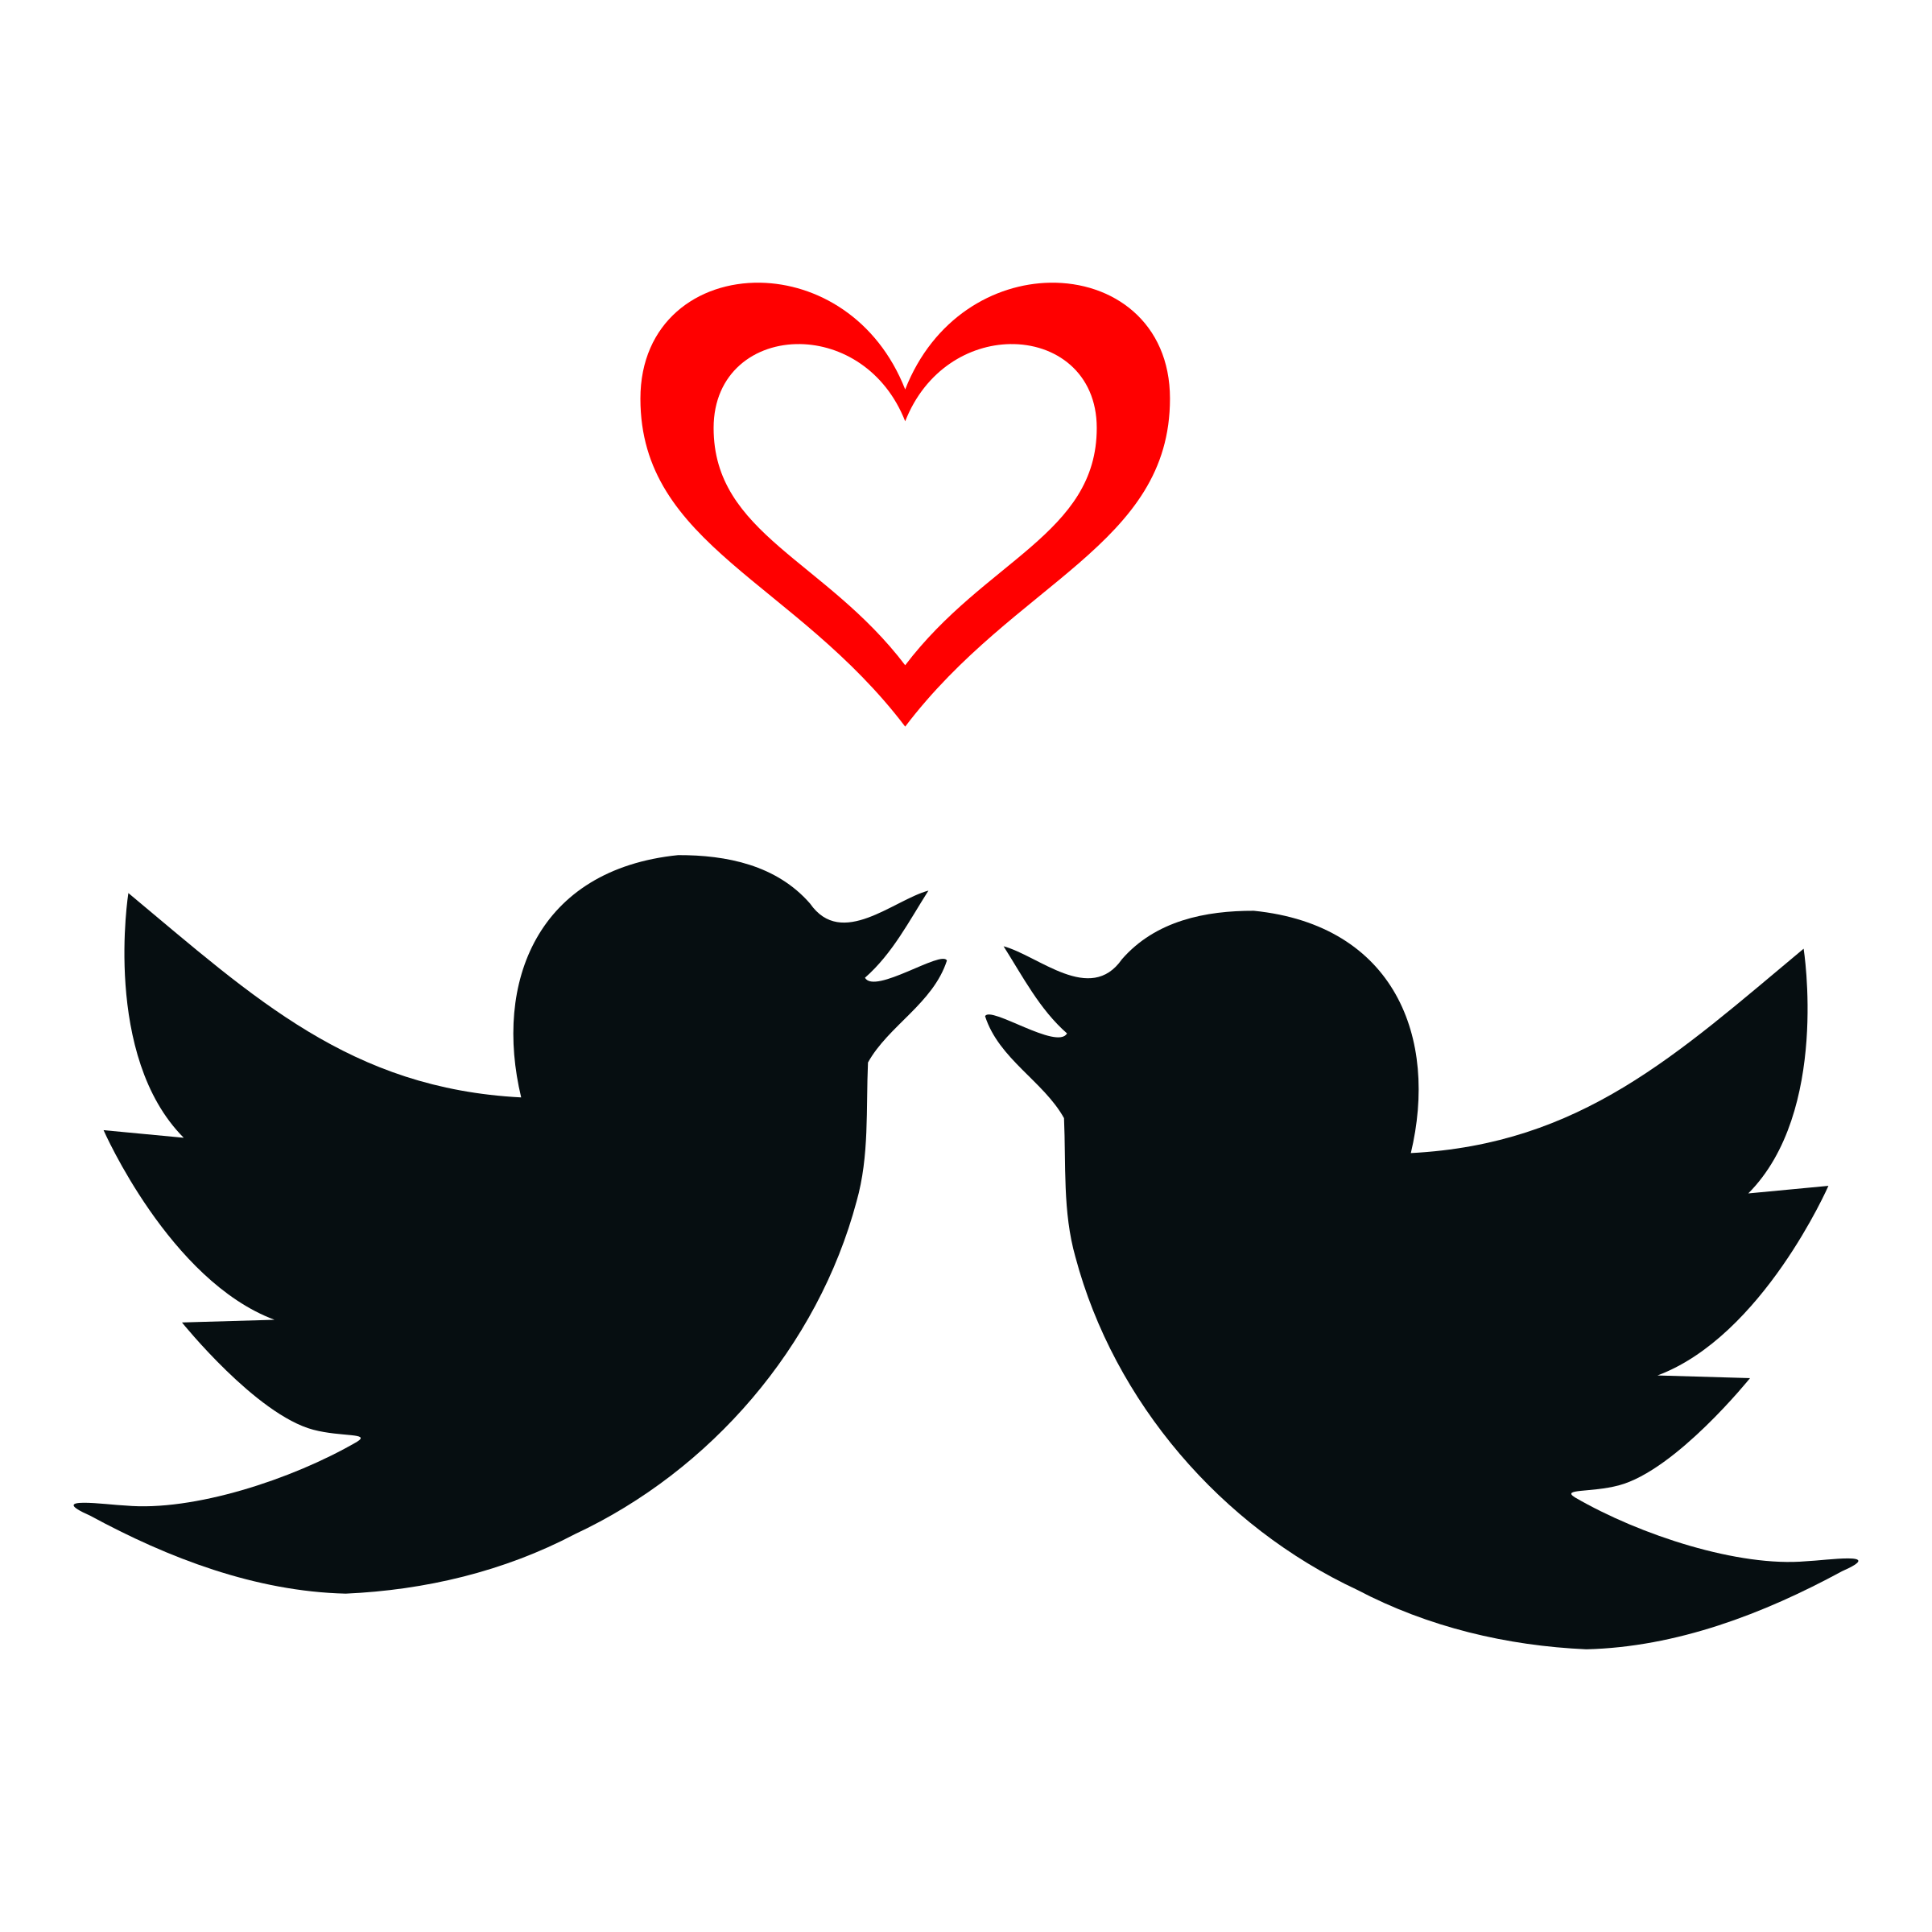 Love Birds Clip Art Silhouette.